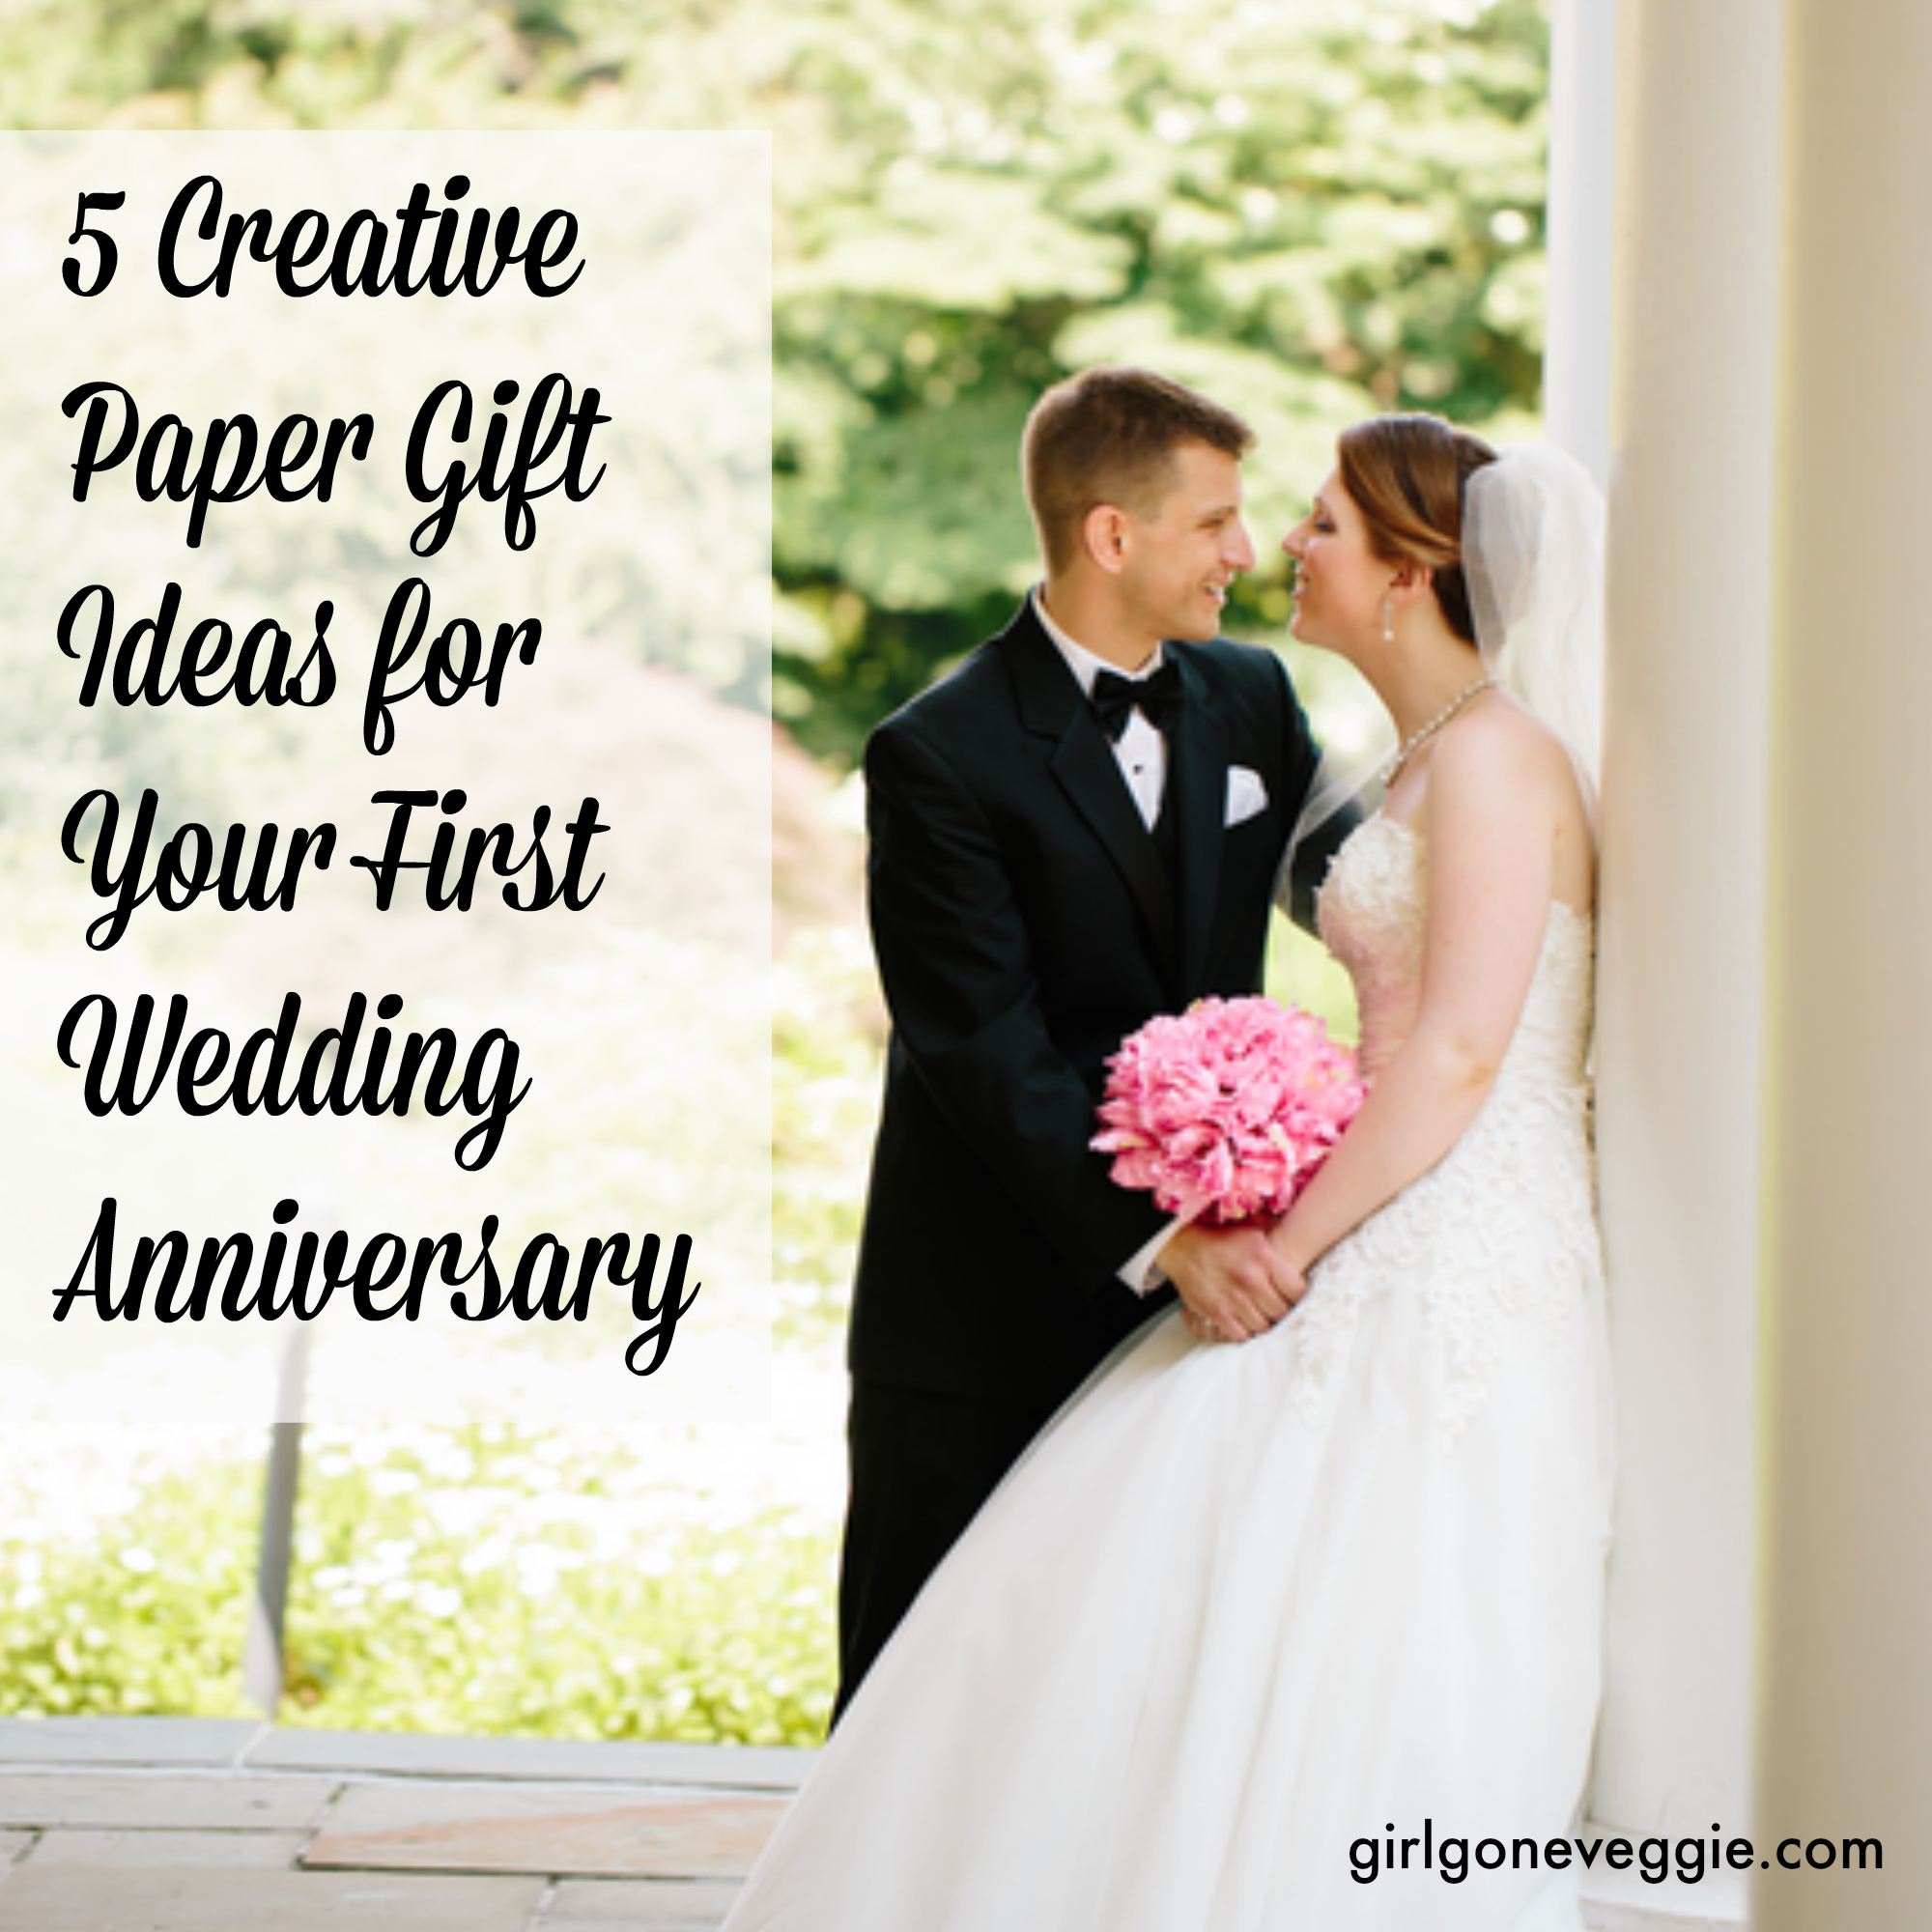 3 Wedding Anniversary Gift Ideas : ... Photos - Anniversary Gift Ideas By Year Wedding Anniversary Gift Ideas